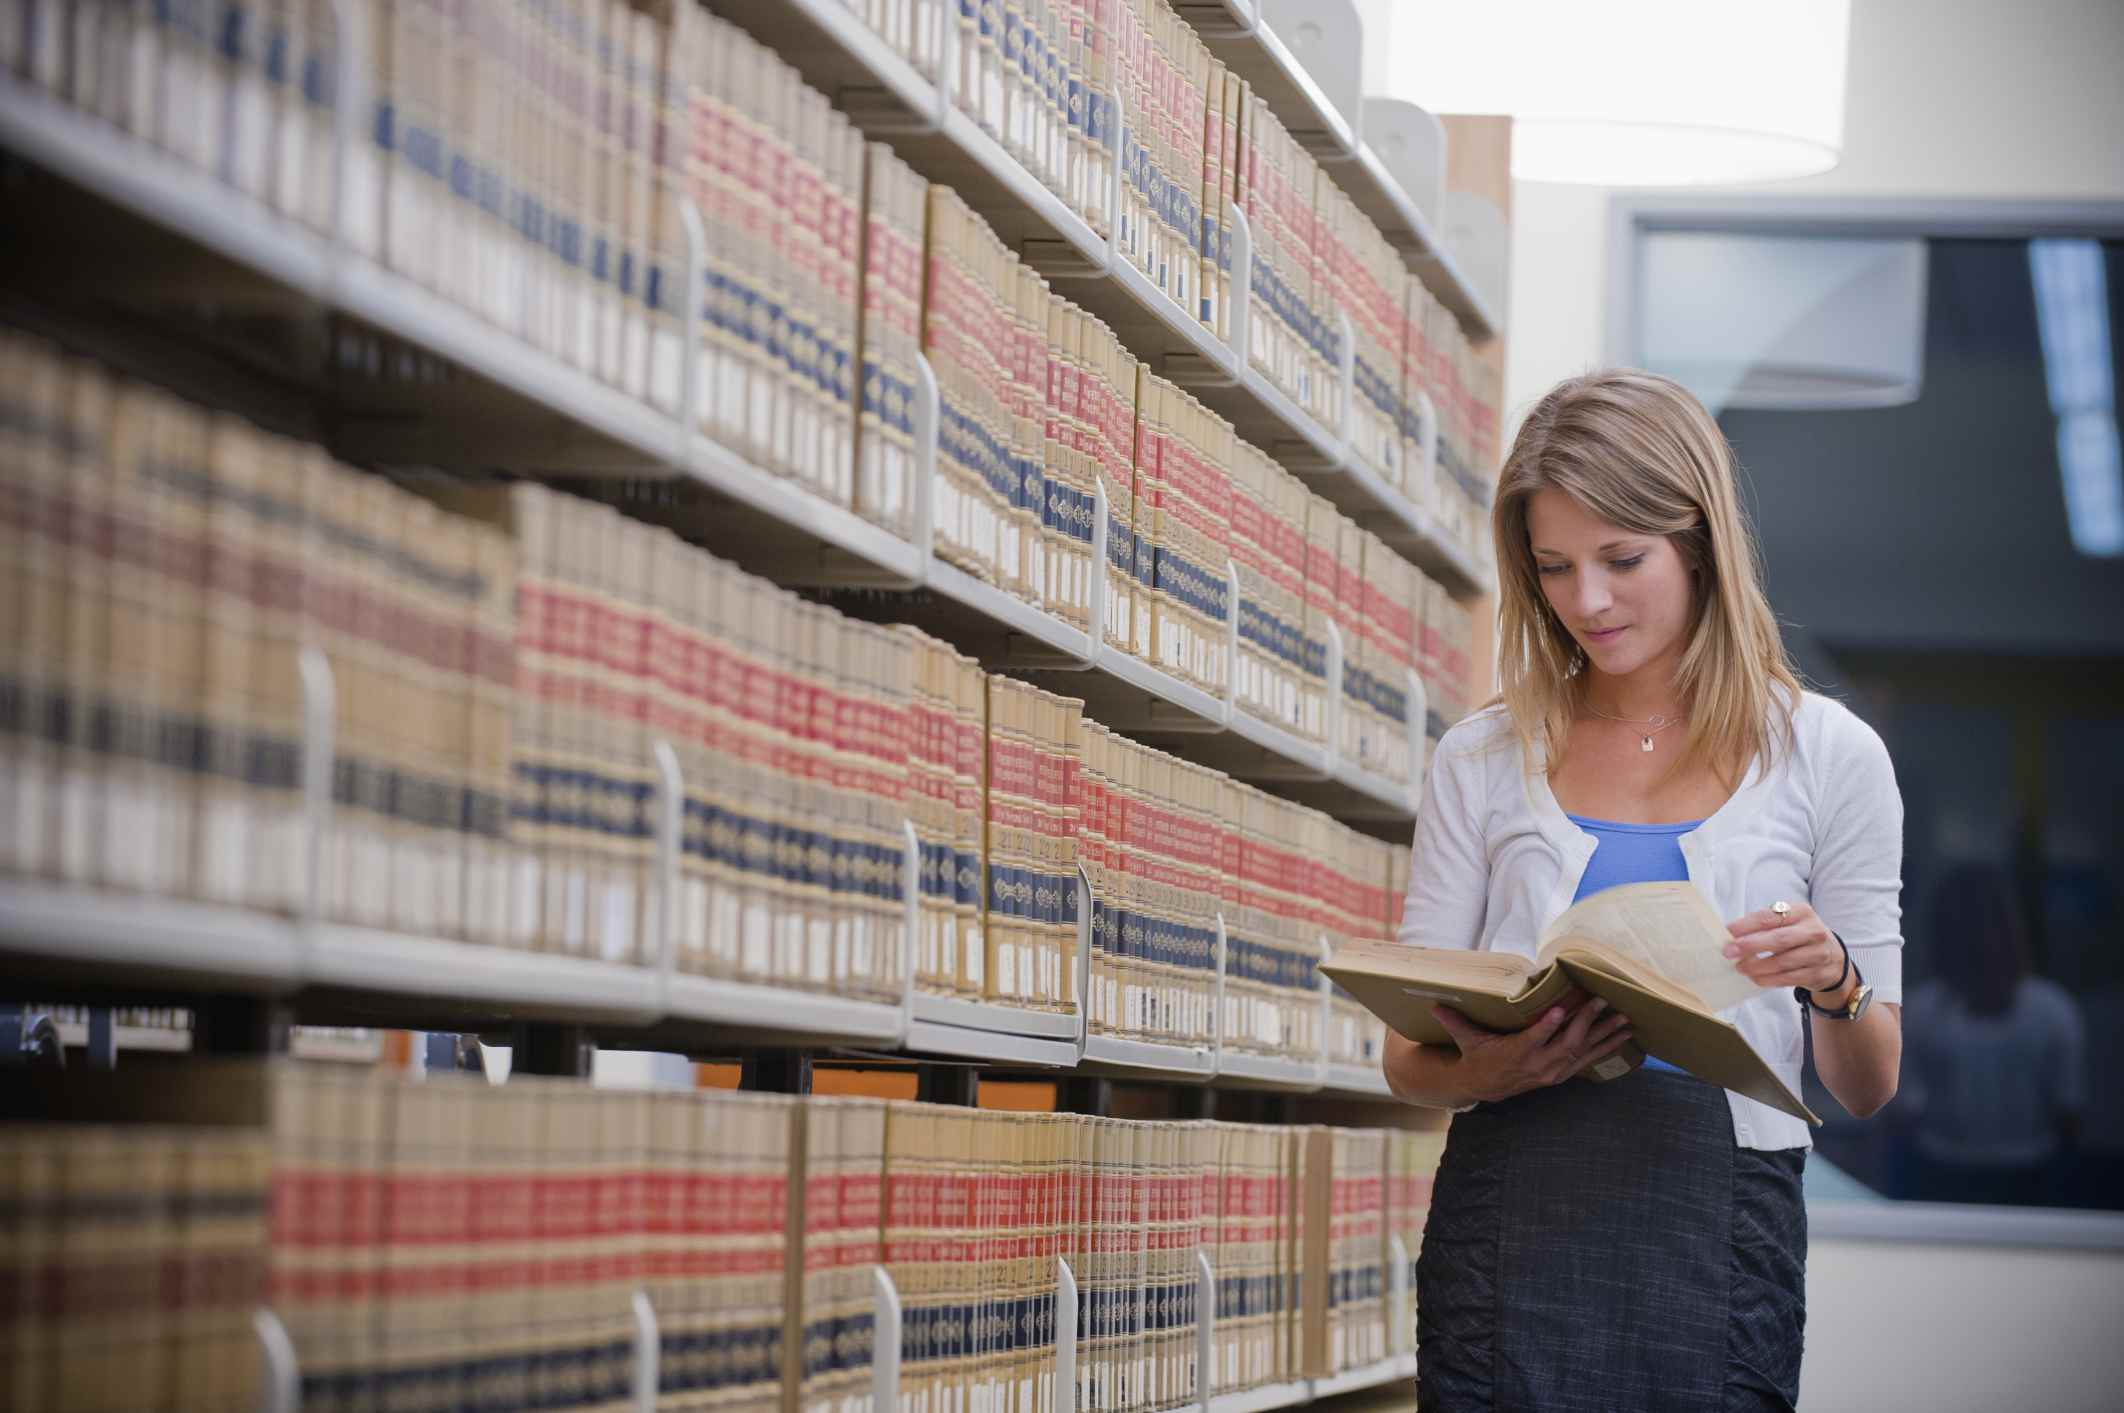 Young woman looking through law books